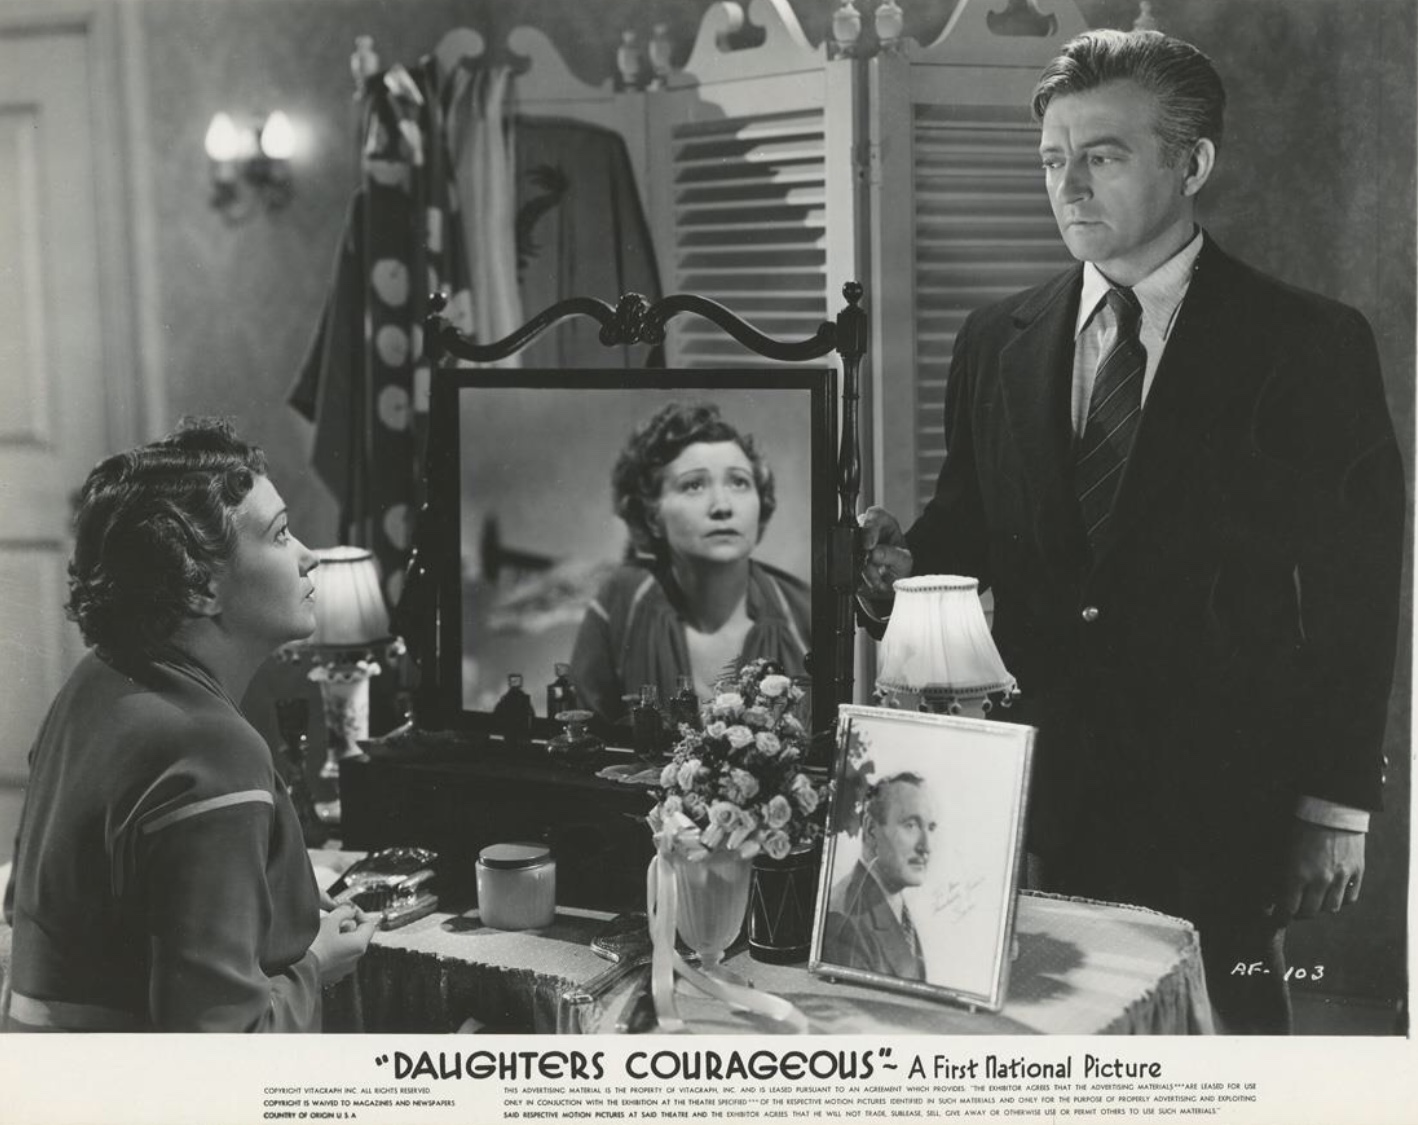 Claude Rains and Fay Bainter in Daughters Courageous (1939)